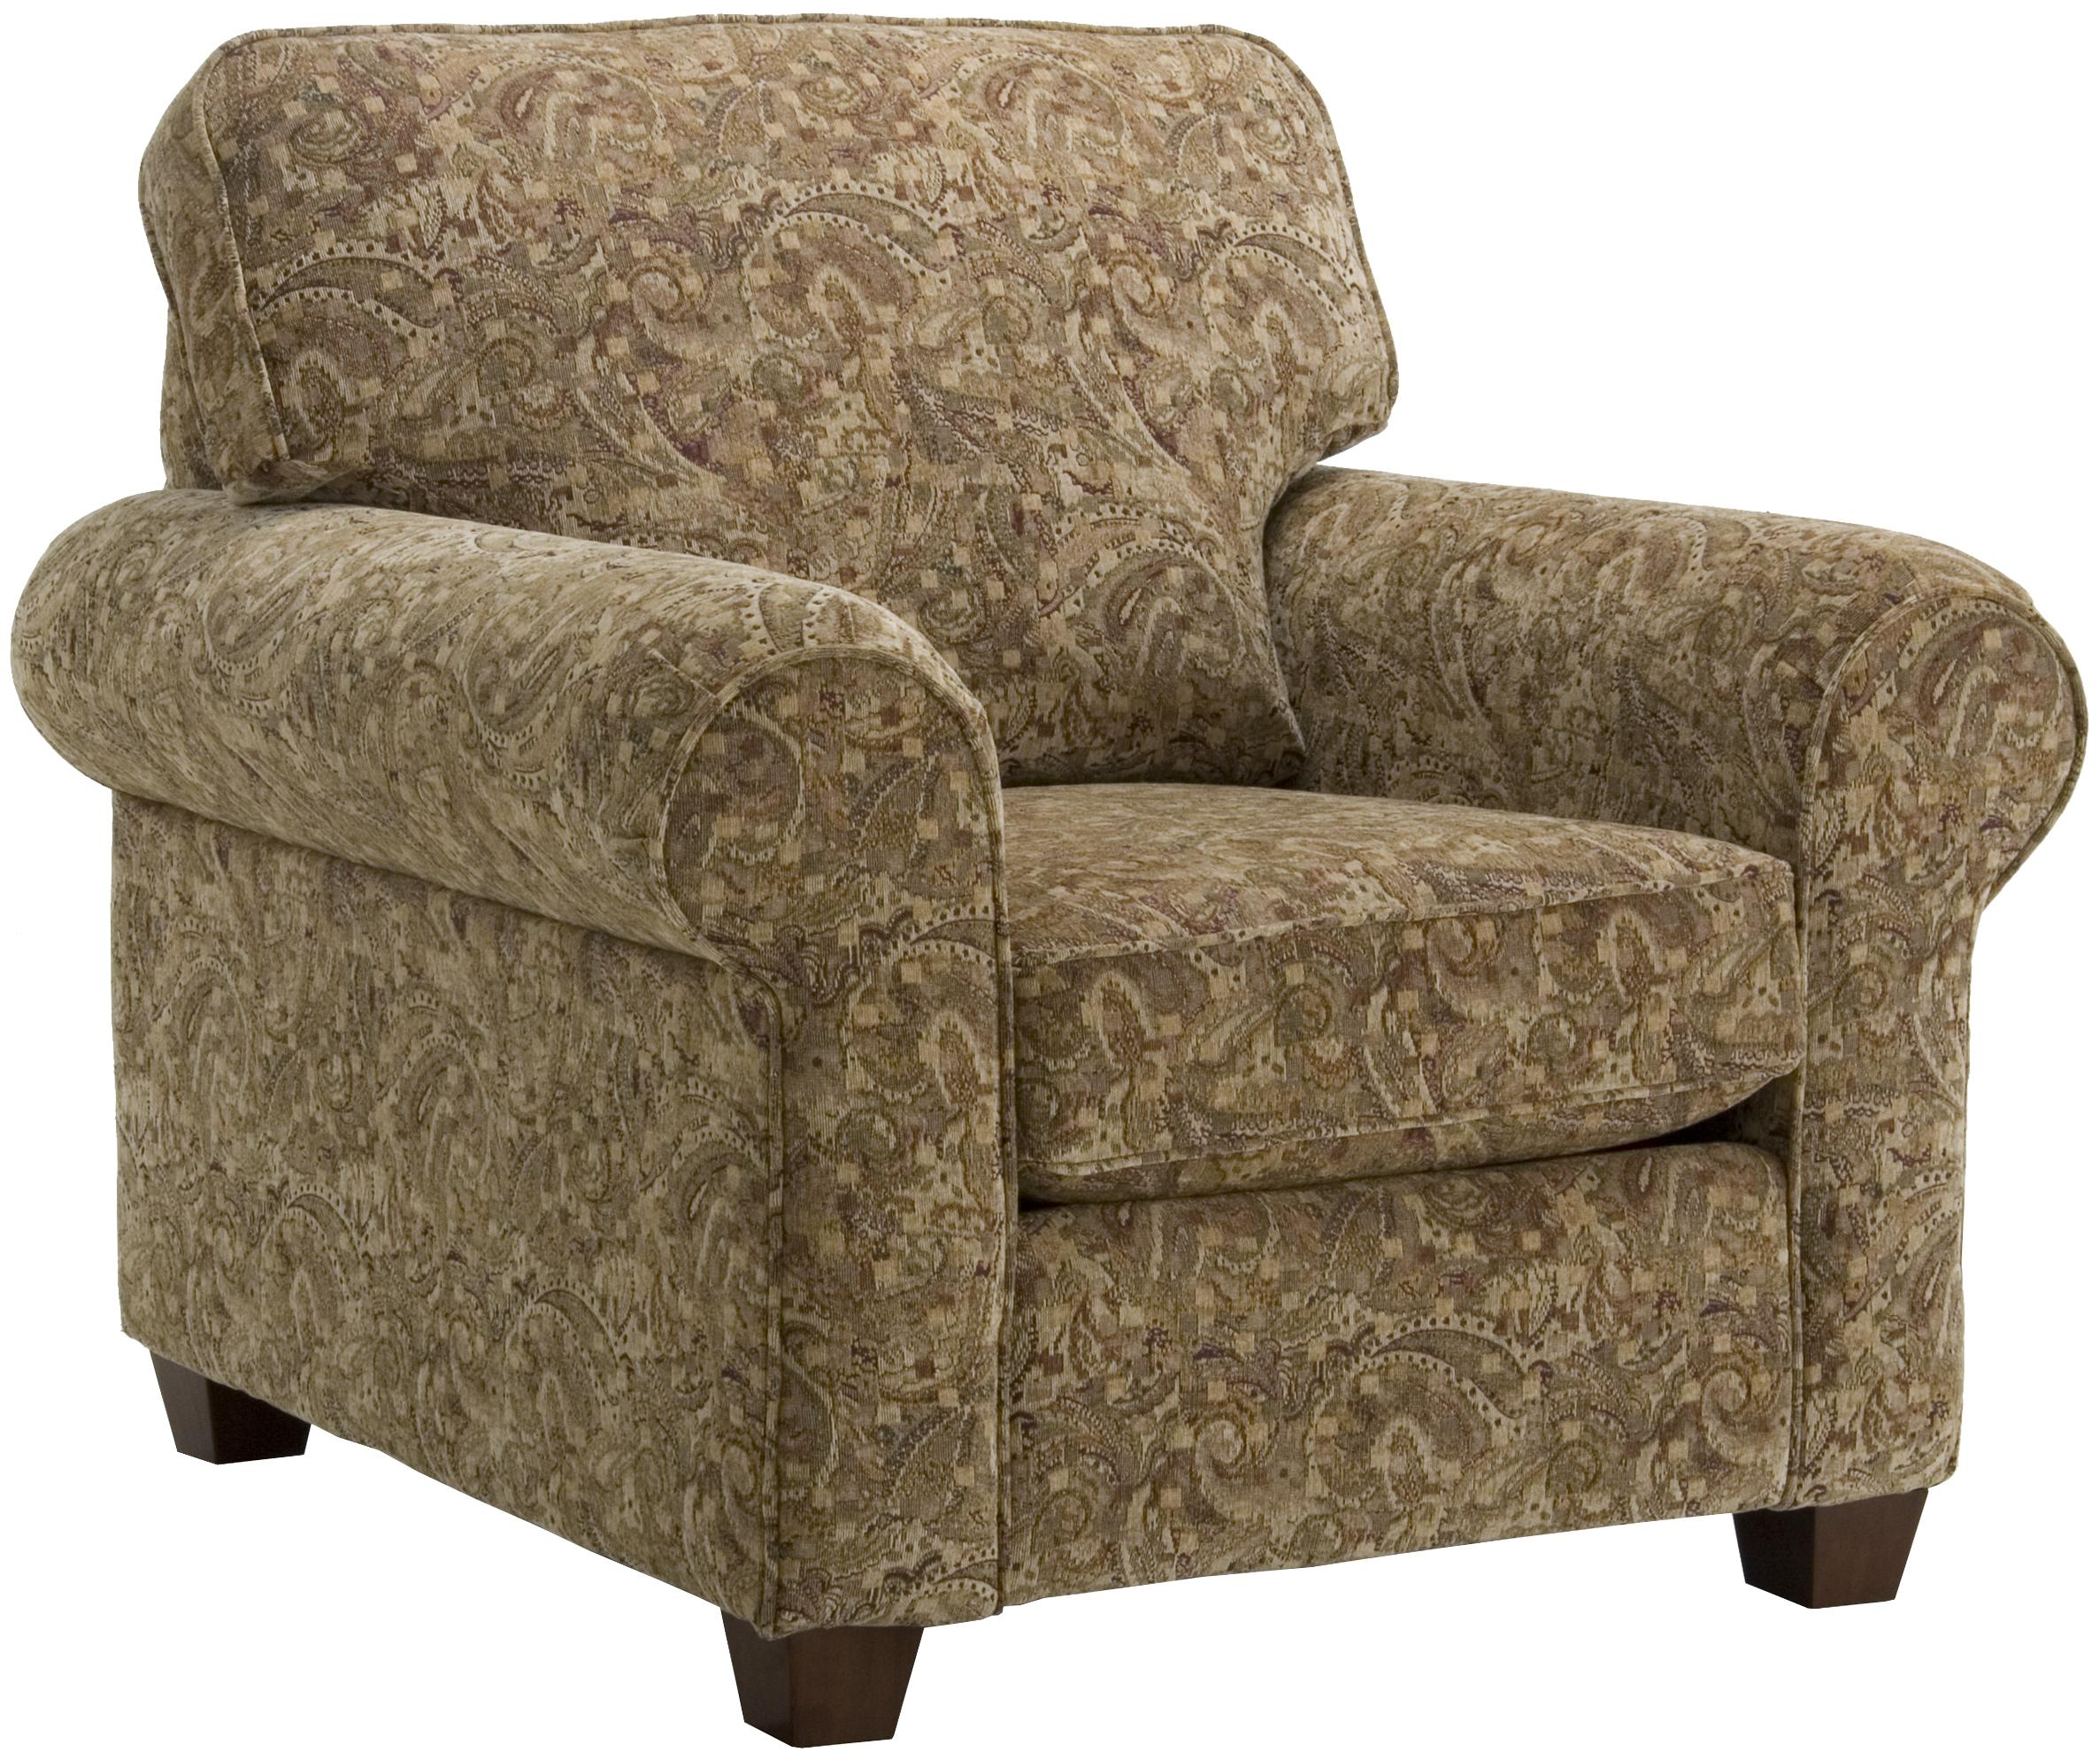 2179 Chair by Decor-Rest at Rooms for Less